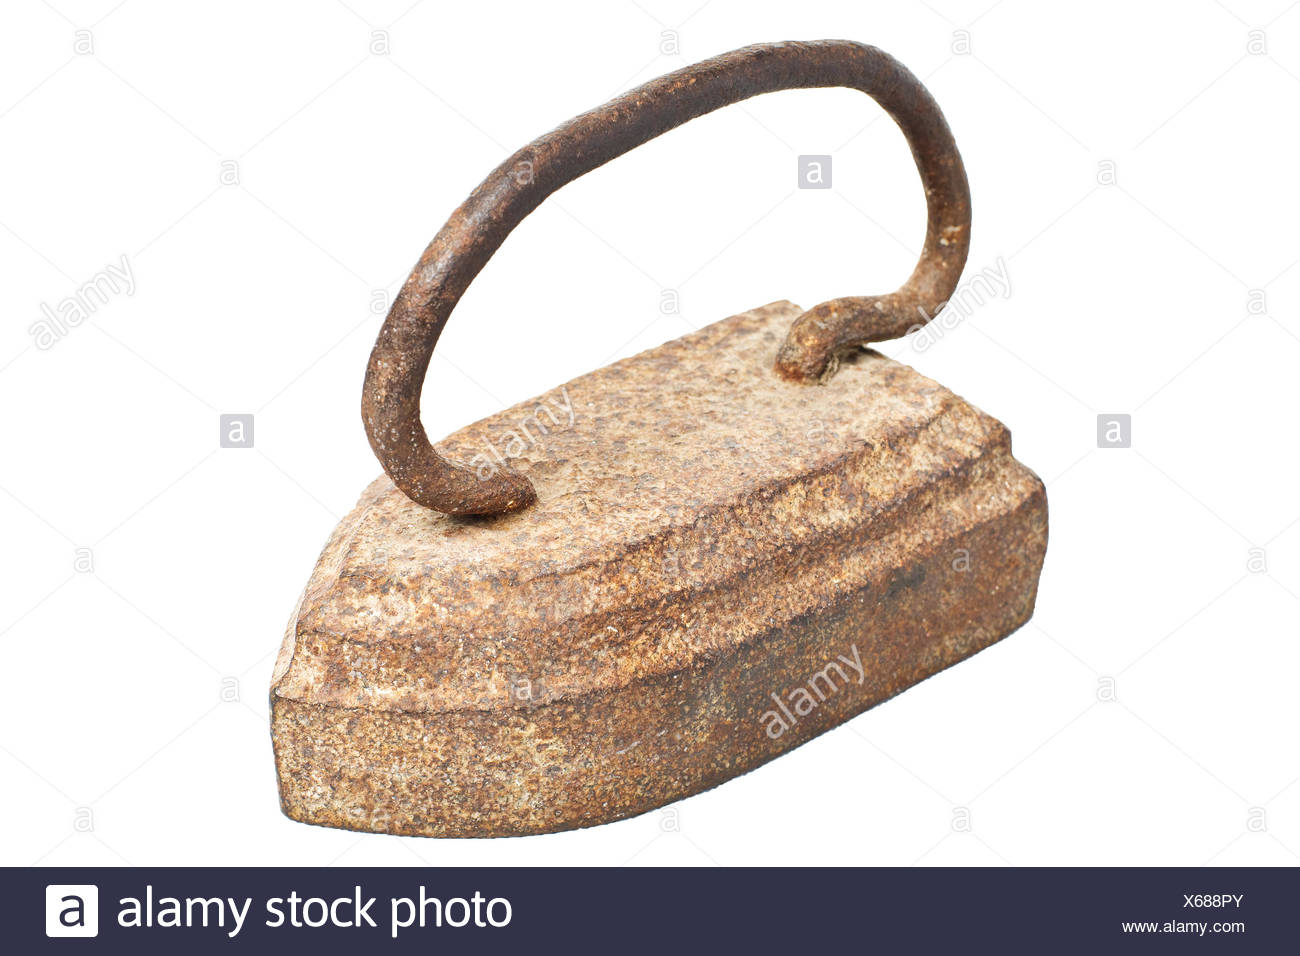 Old vintage Russian Soviet rusty iron isolated on a white background. - Stock Image